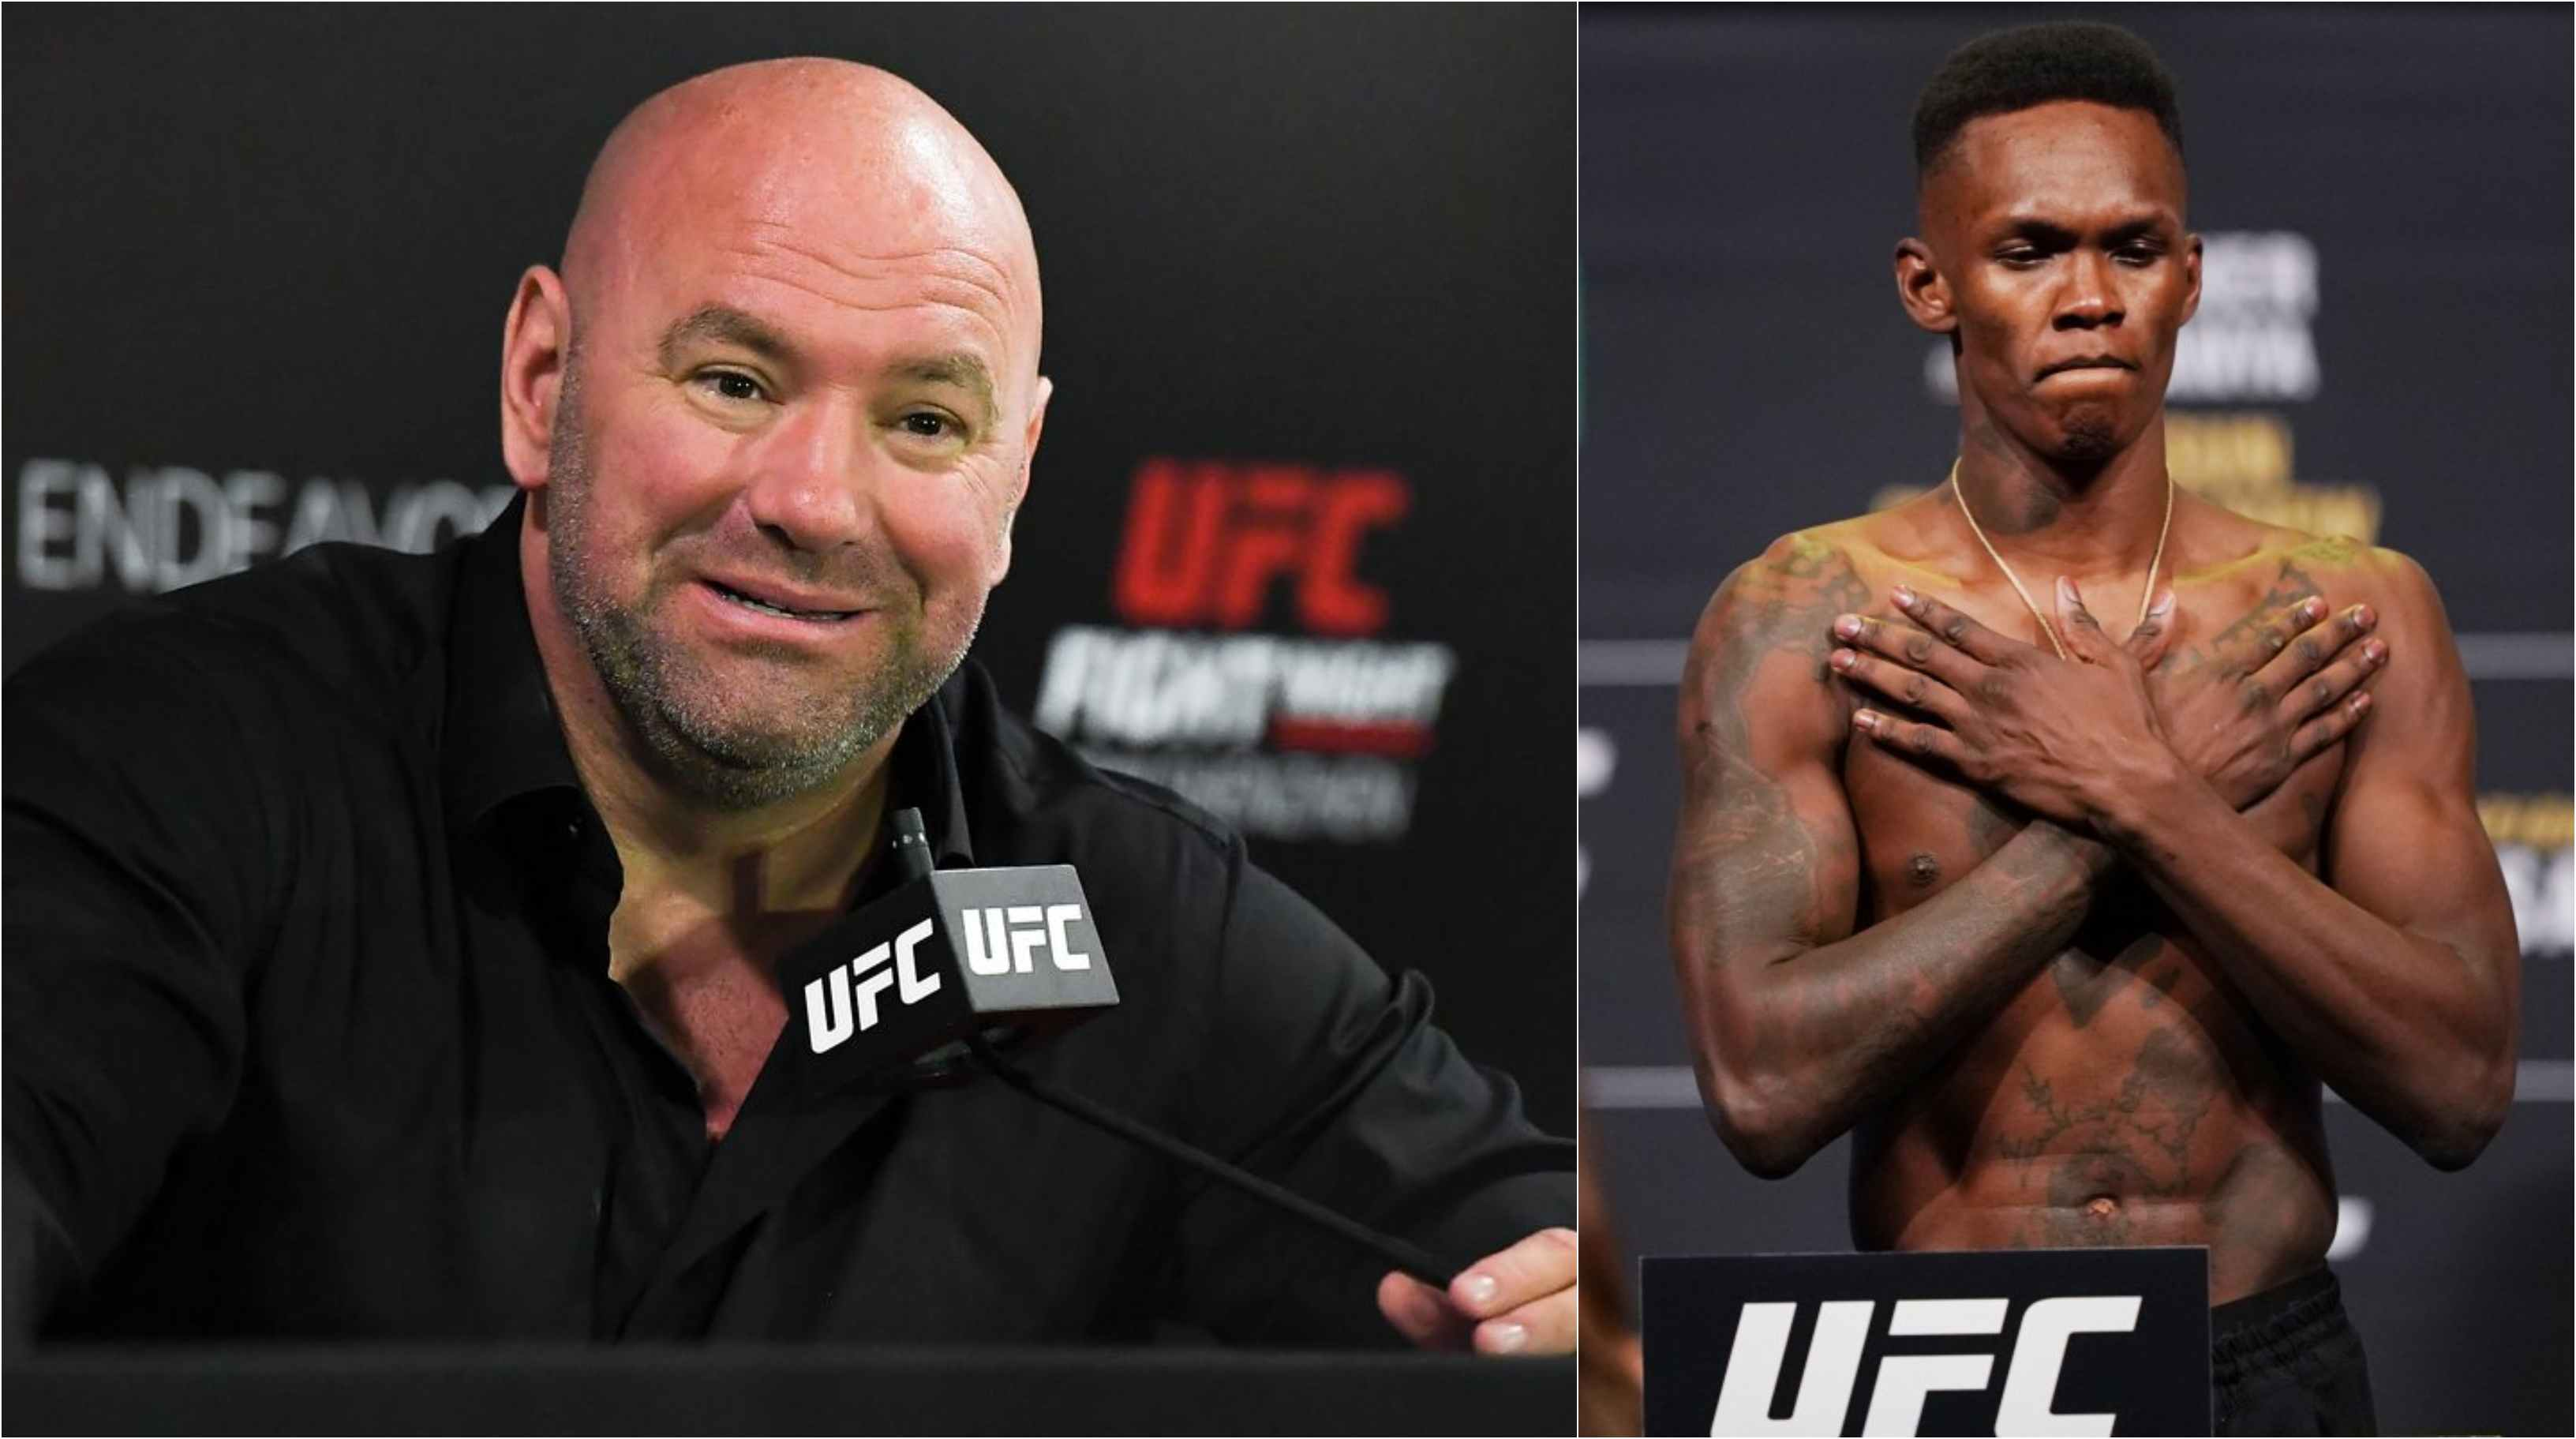 Dana White confirms Paulo Costa is next for Stylebender - but says Jon Jones fight is 'fun' - Costa